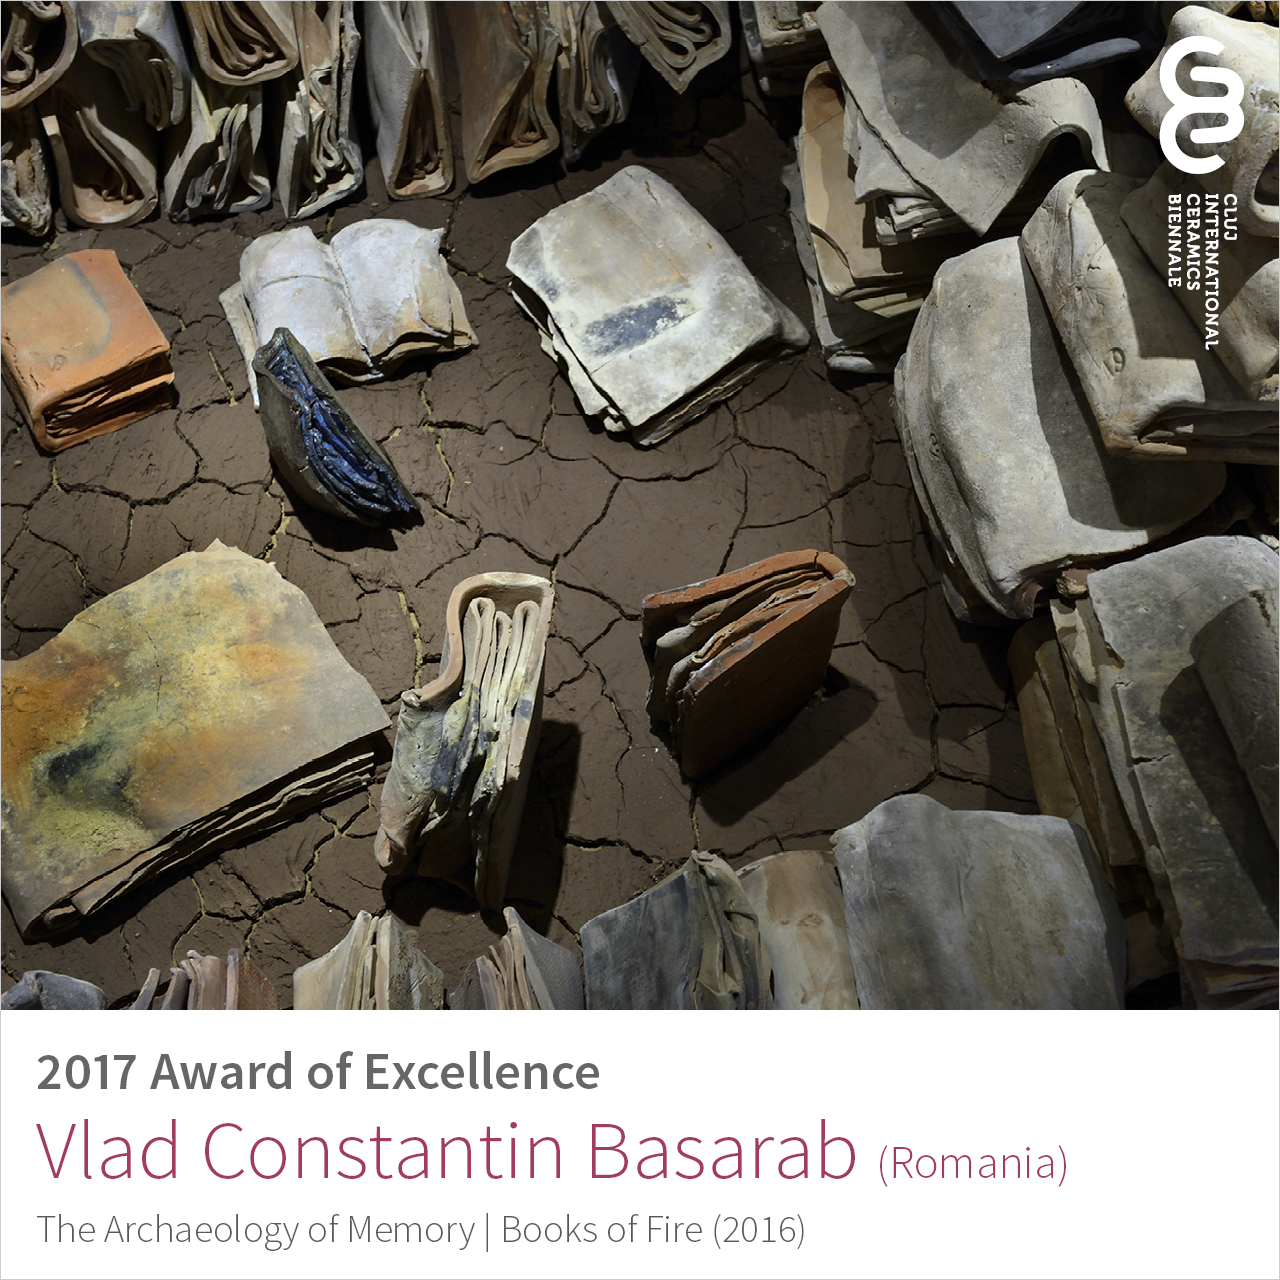 Vlad Constantin Basarab (Romania), Award of Excellence at Cluj Ceramics Biennale 2017